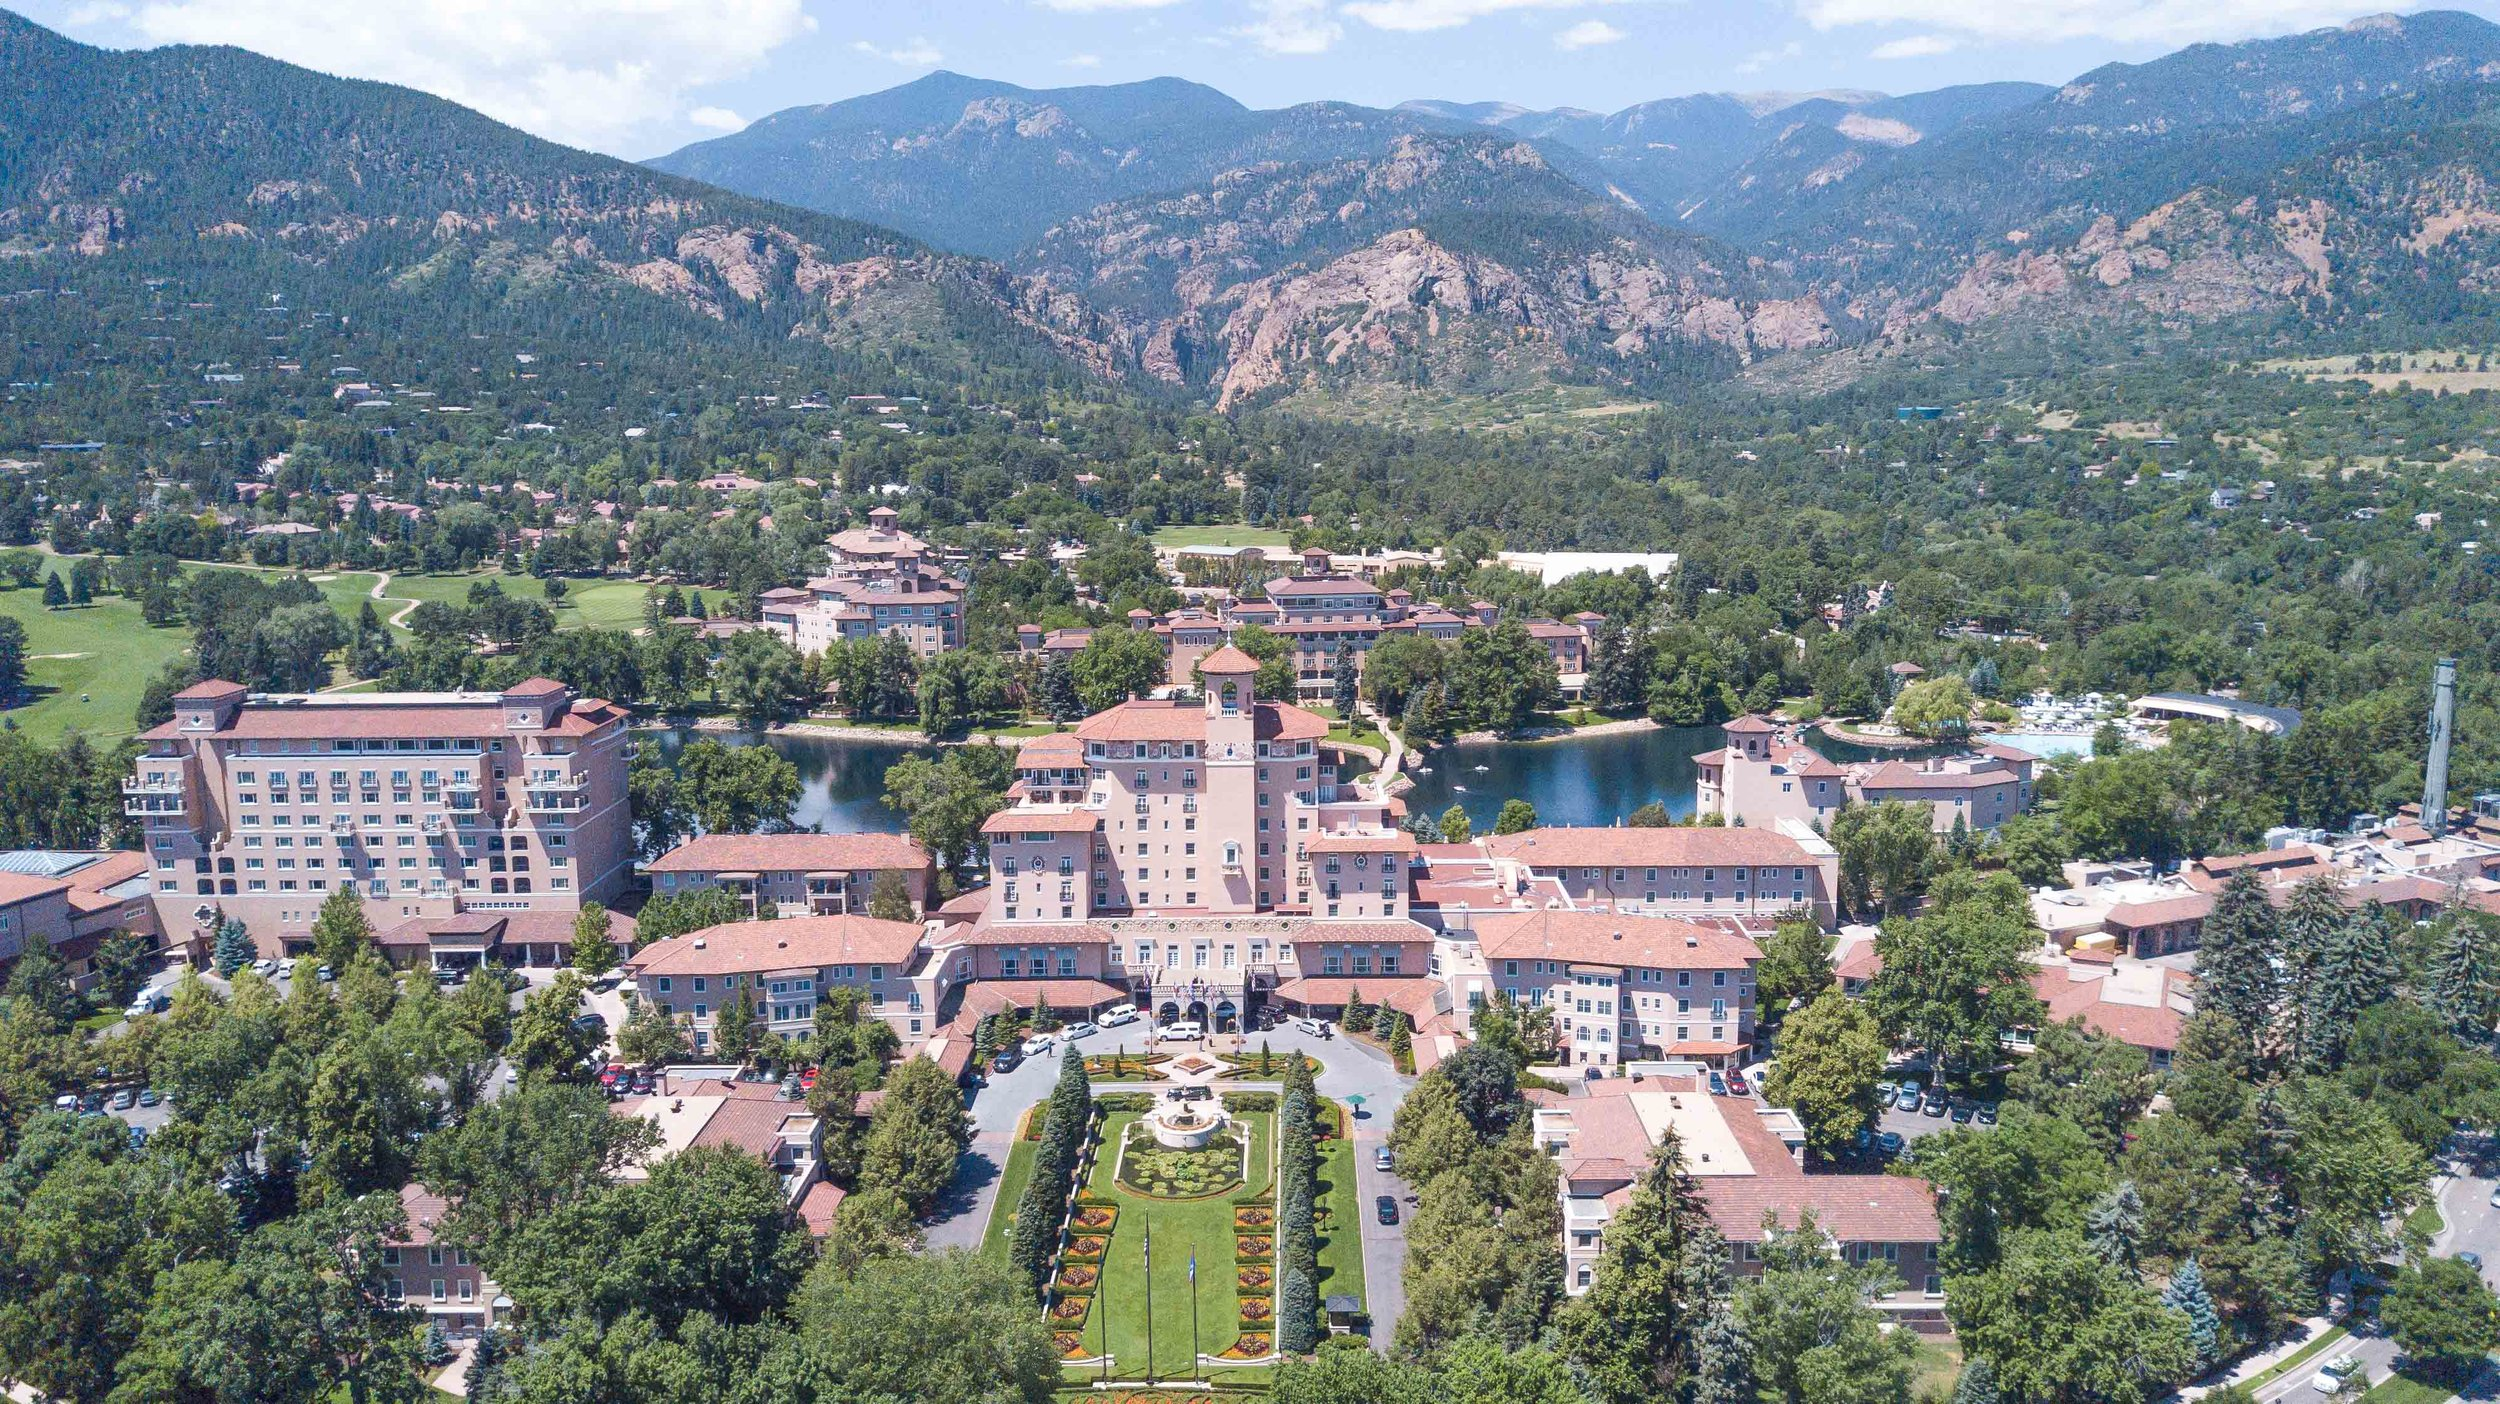 Originally established in 1918, The Broadmoor Hotel has 779 rooms.